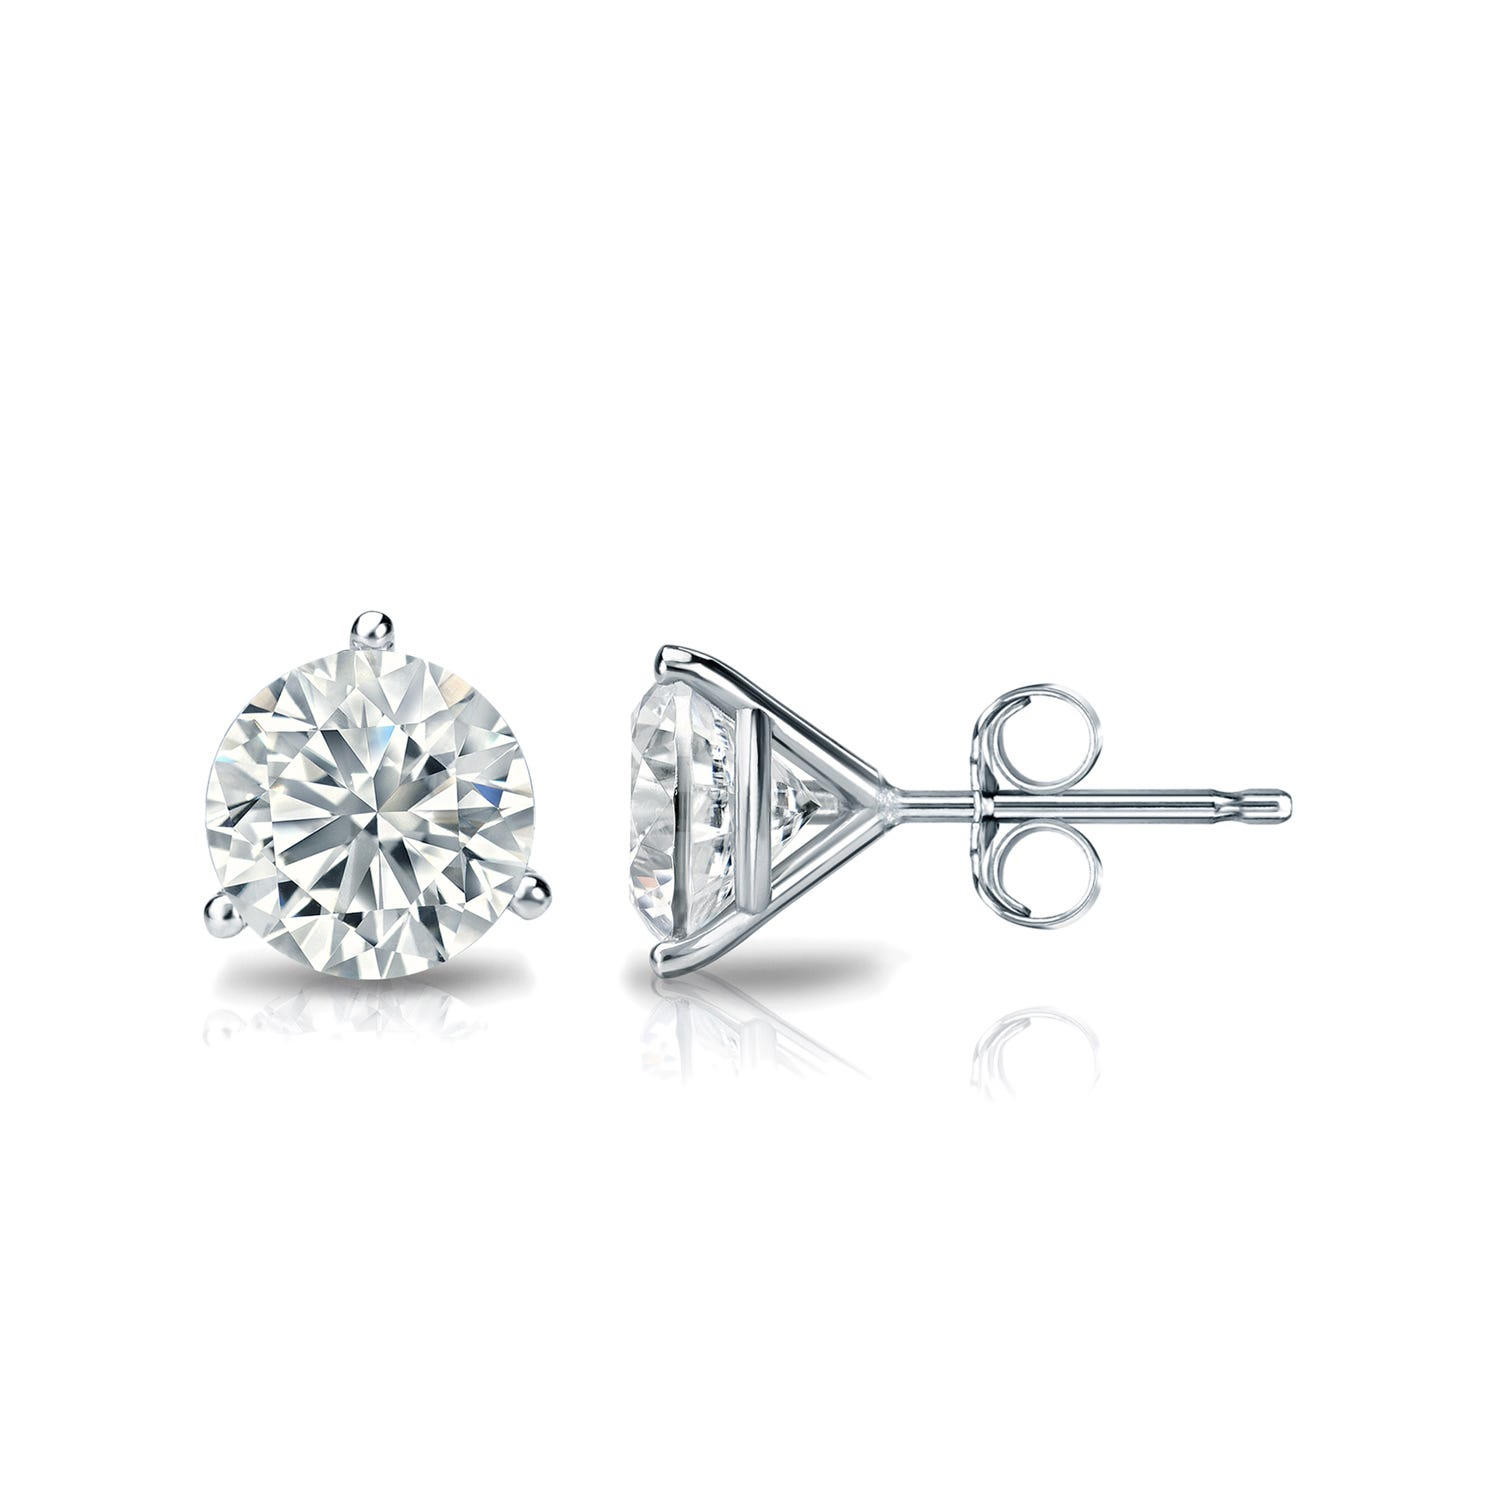 1 CTTW Round Diamond Solitaire Stud Earrings IJ I1 in Platinum IGI Certified 3-Prong Setting